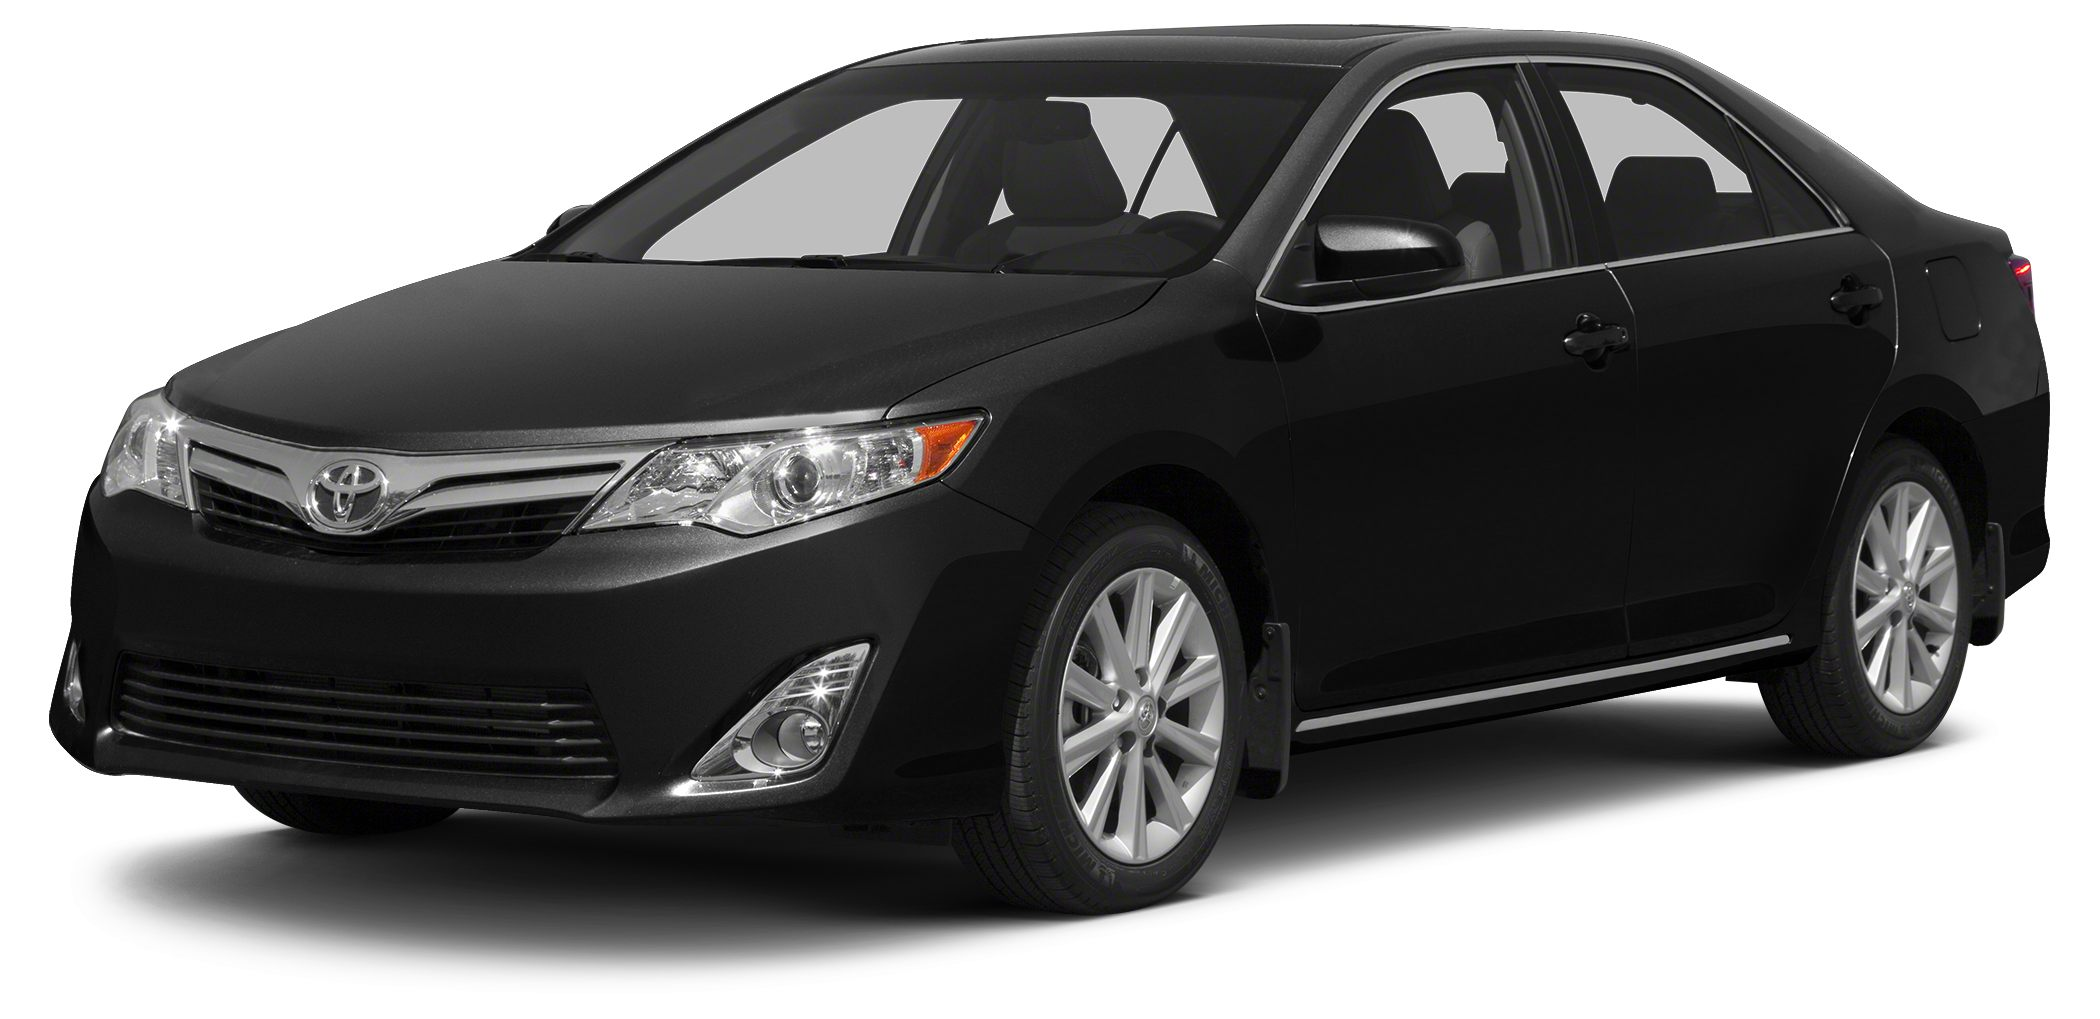 2013 Toyota Camry LE CARFAX 1-Owner LOW MILES - 22777 FUEL EFFICIENT 35 MPG Hwy25 MPG City LE